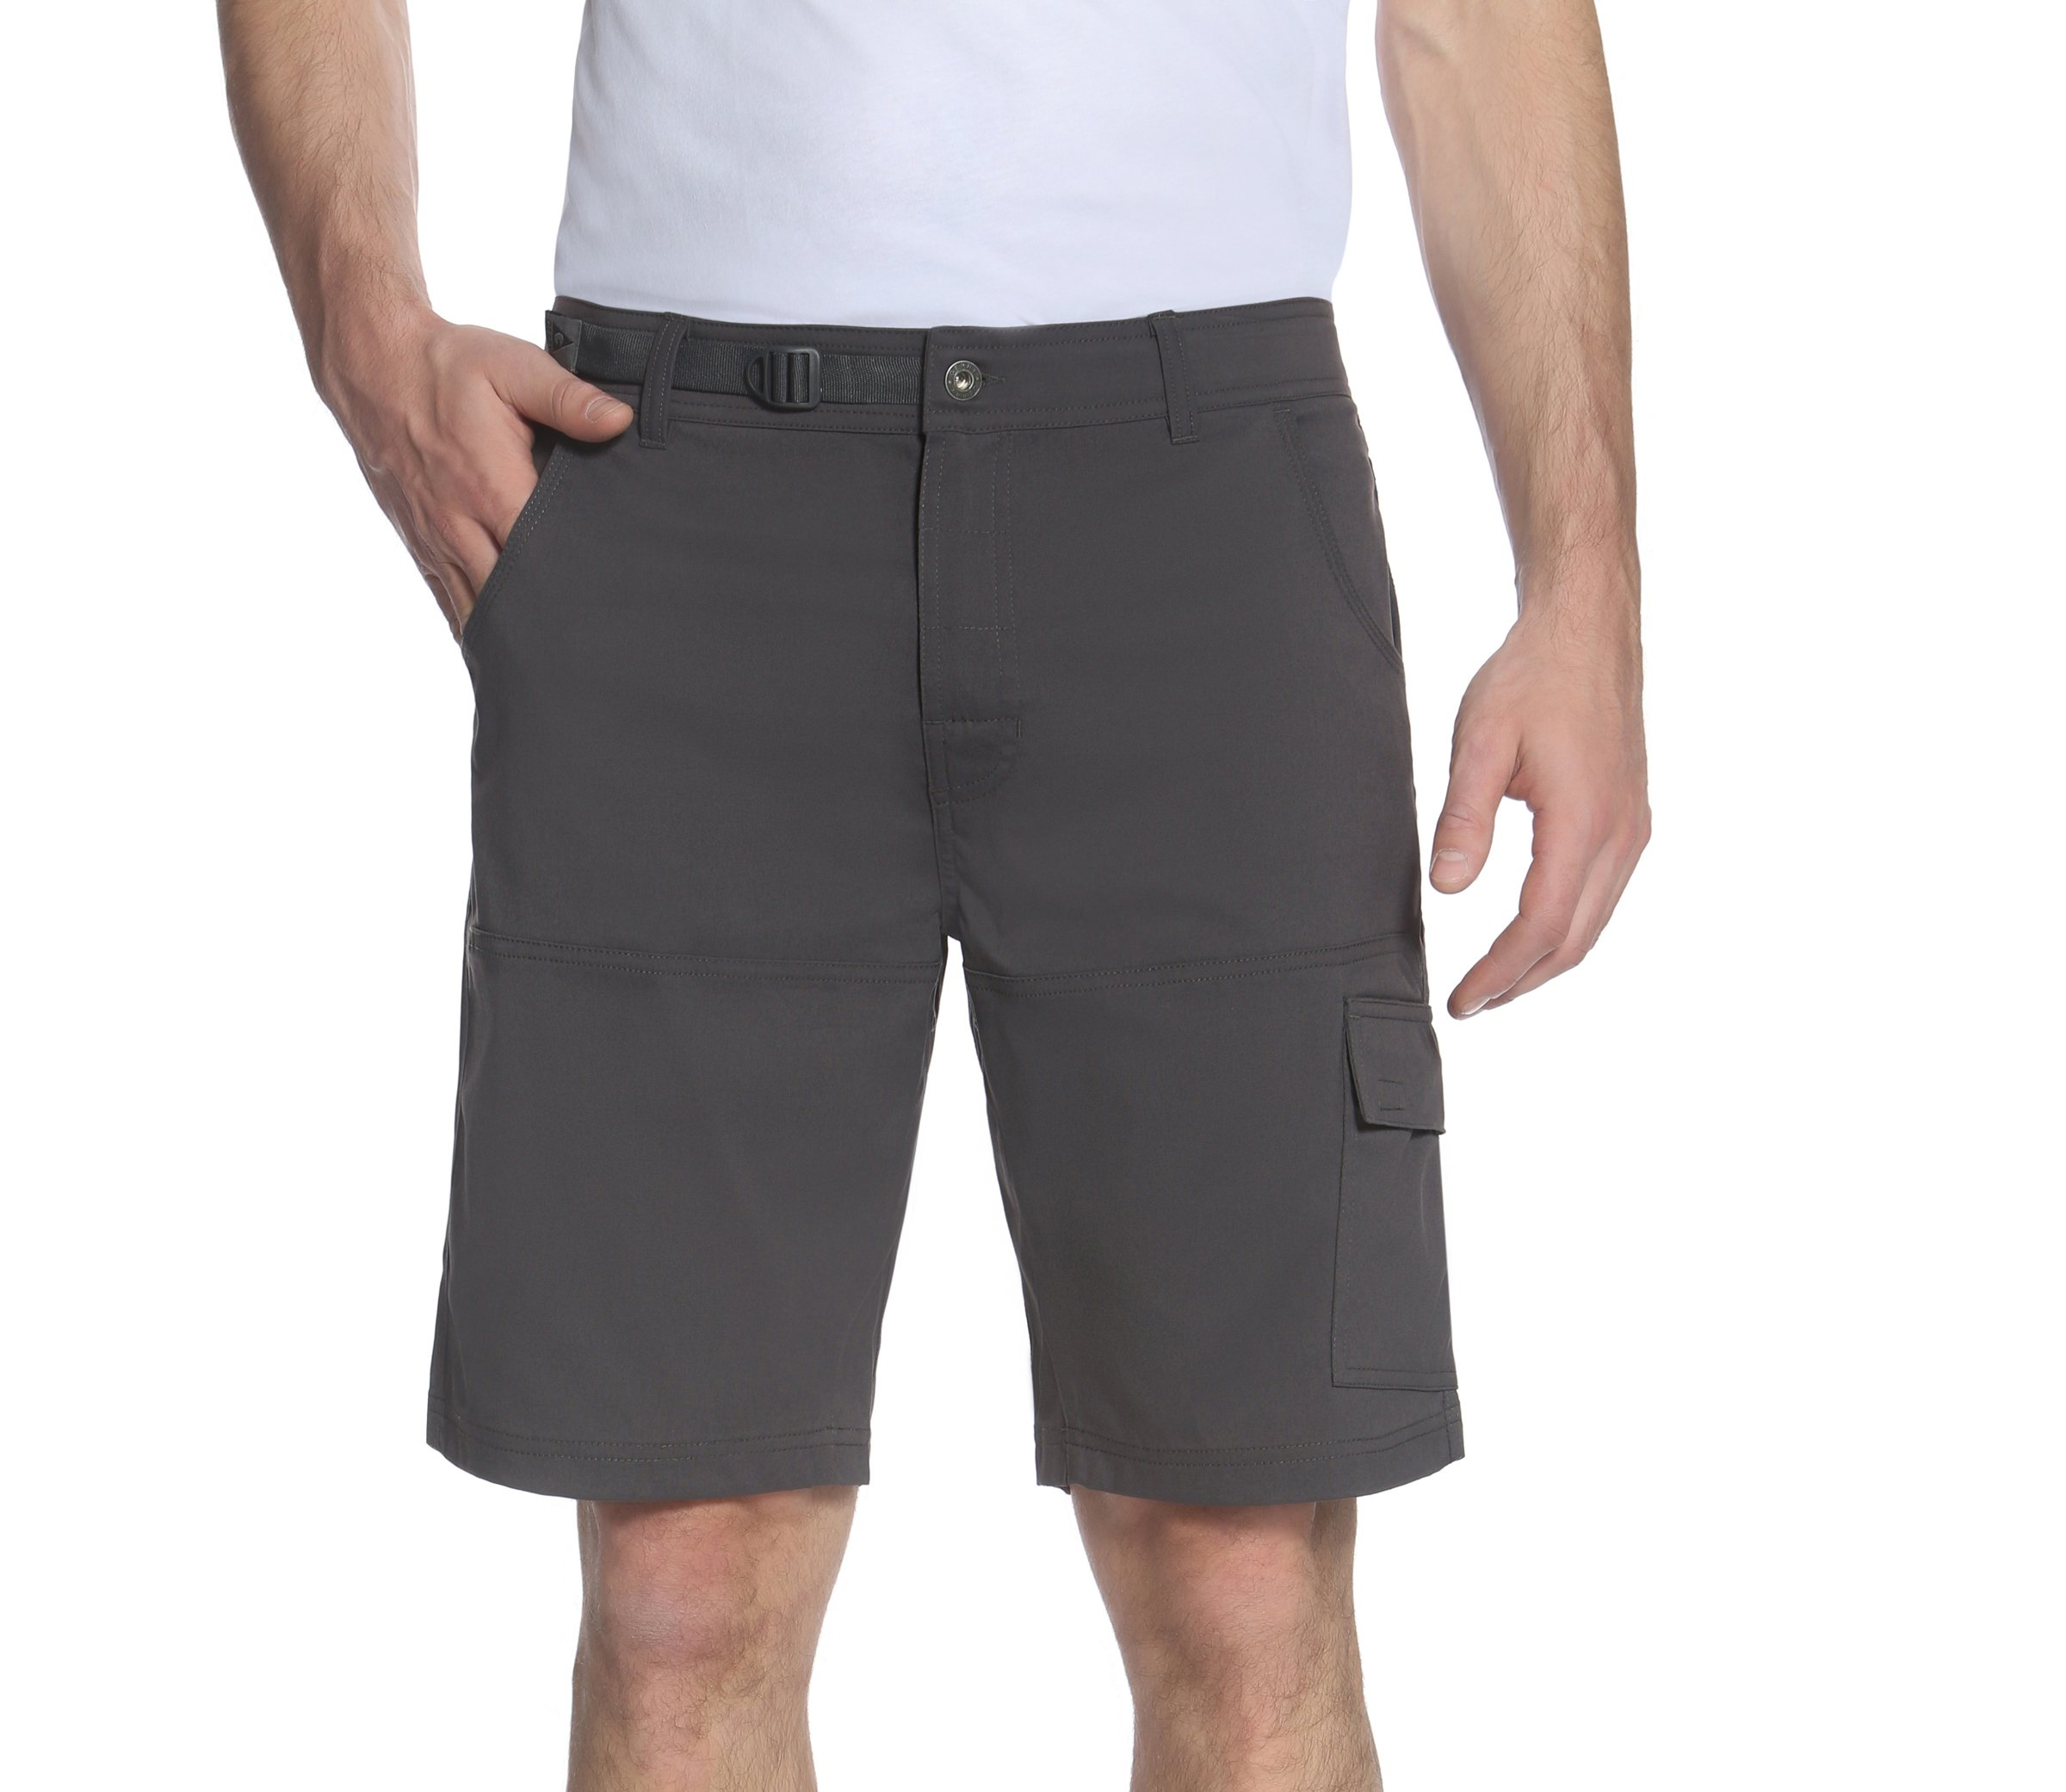 Gerry Men's Venture Flat Front Stretch Cargo Short (Slate, 36) by Gerry